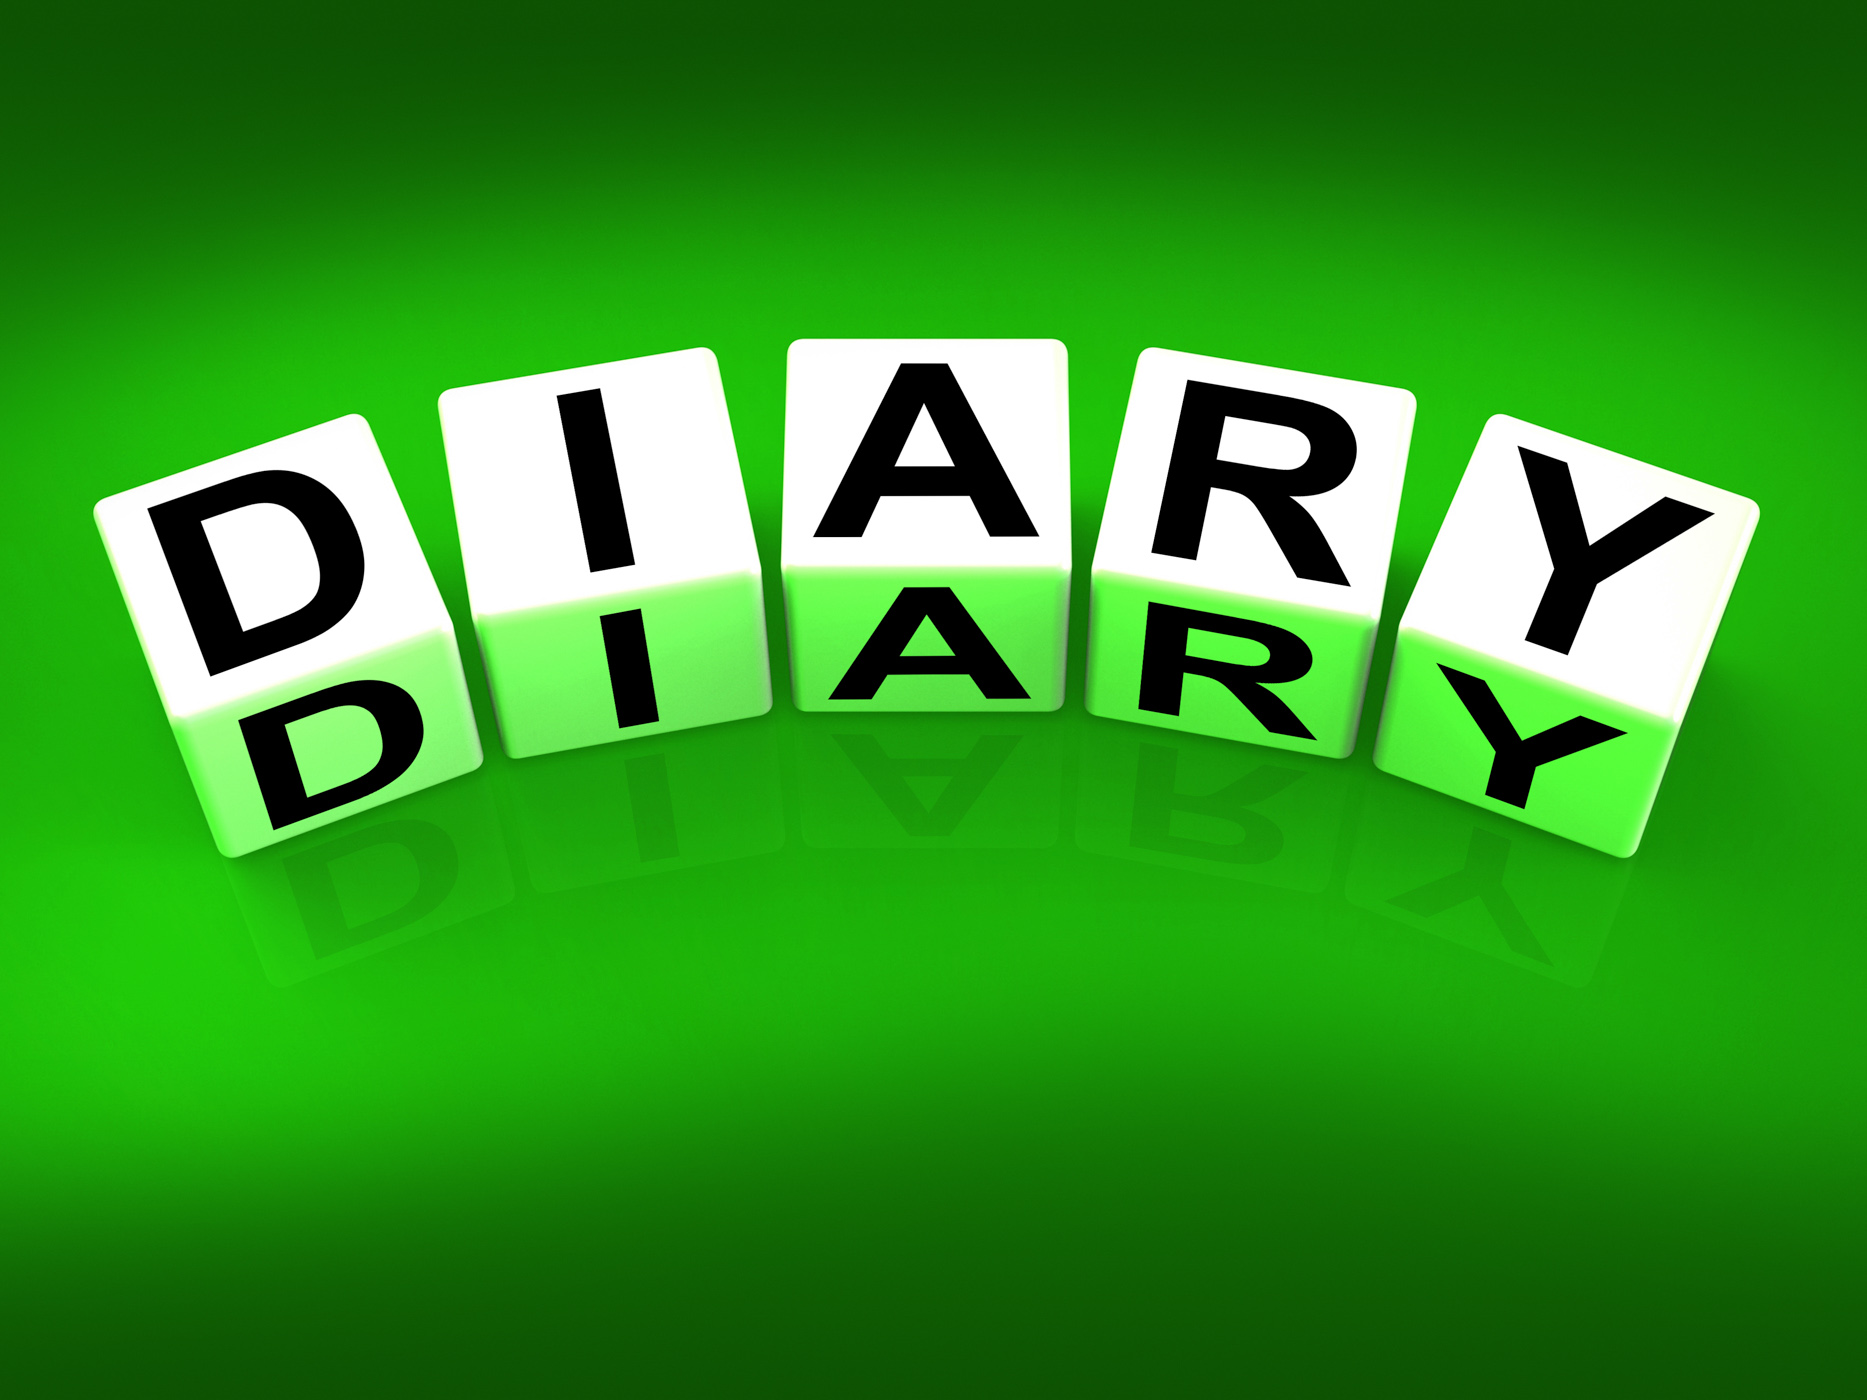 Diary blocks mean journal blog or autobiographical record photo